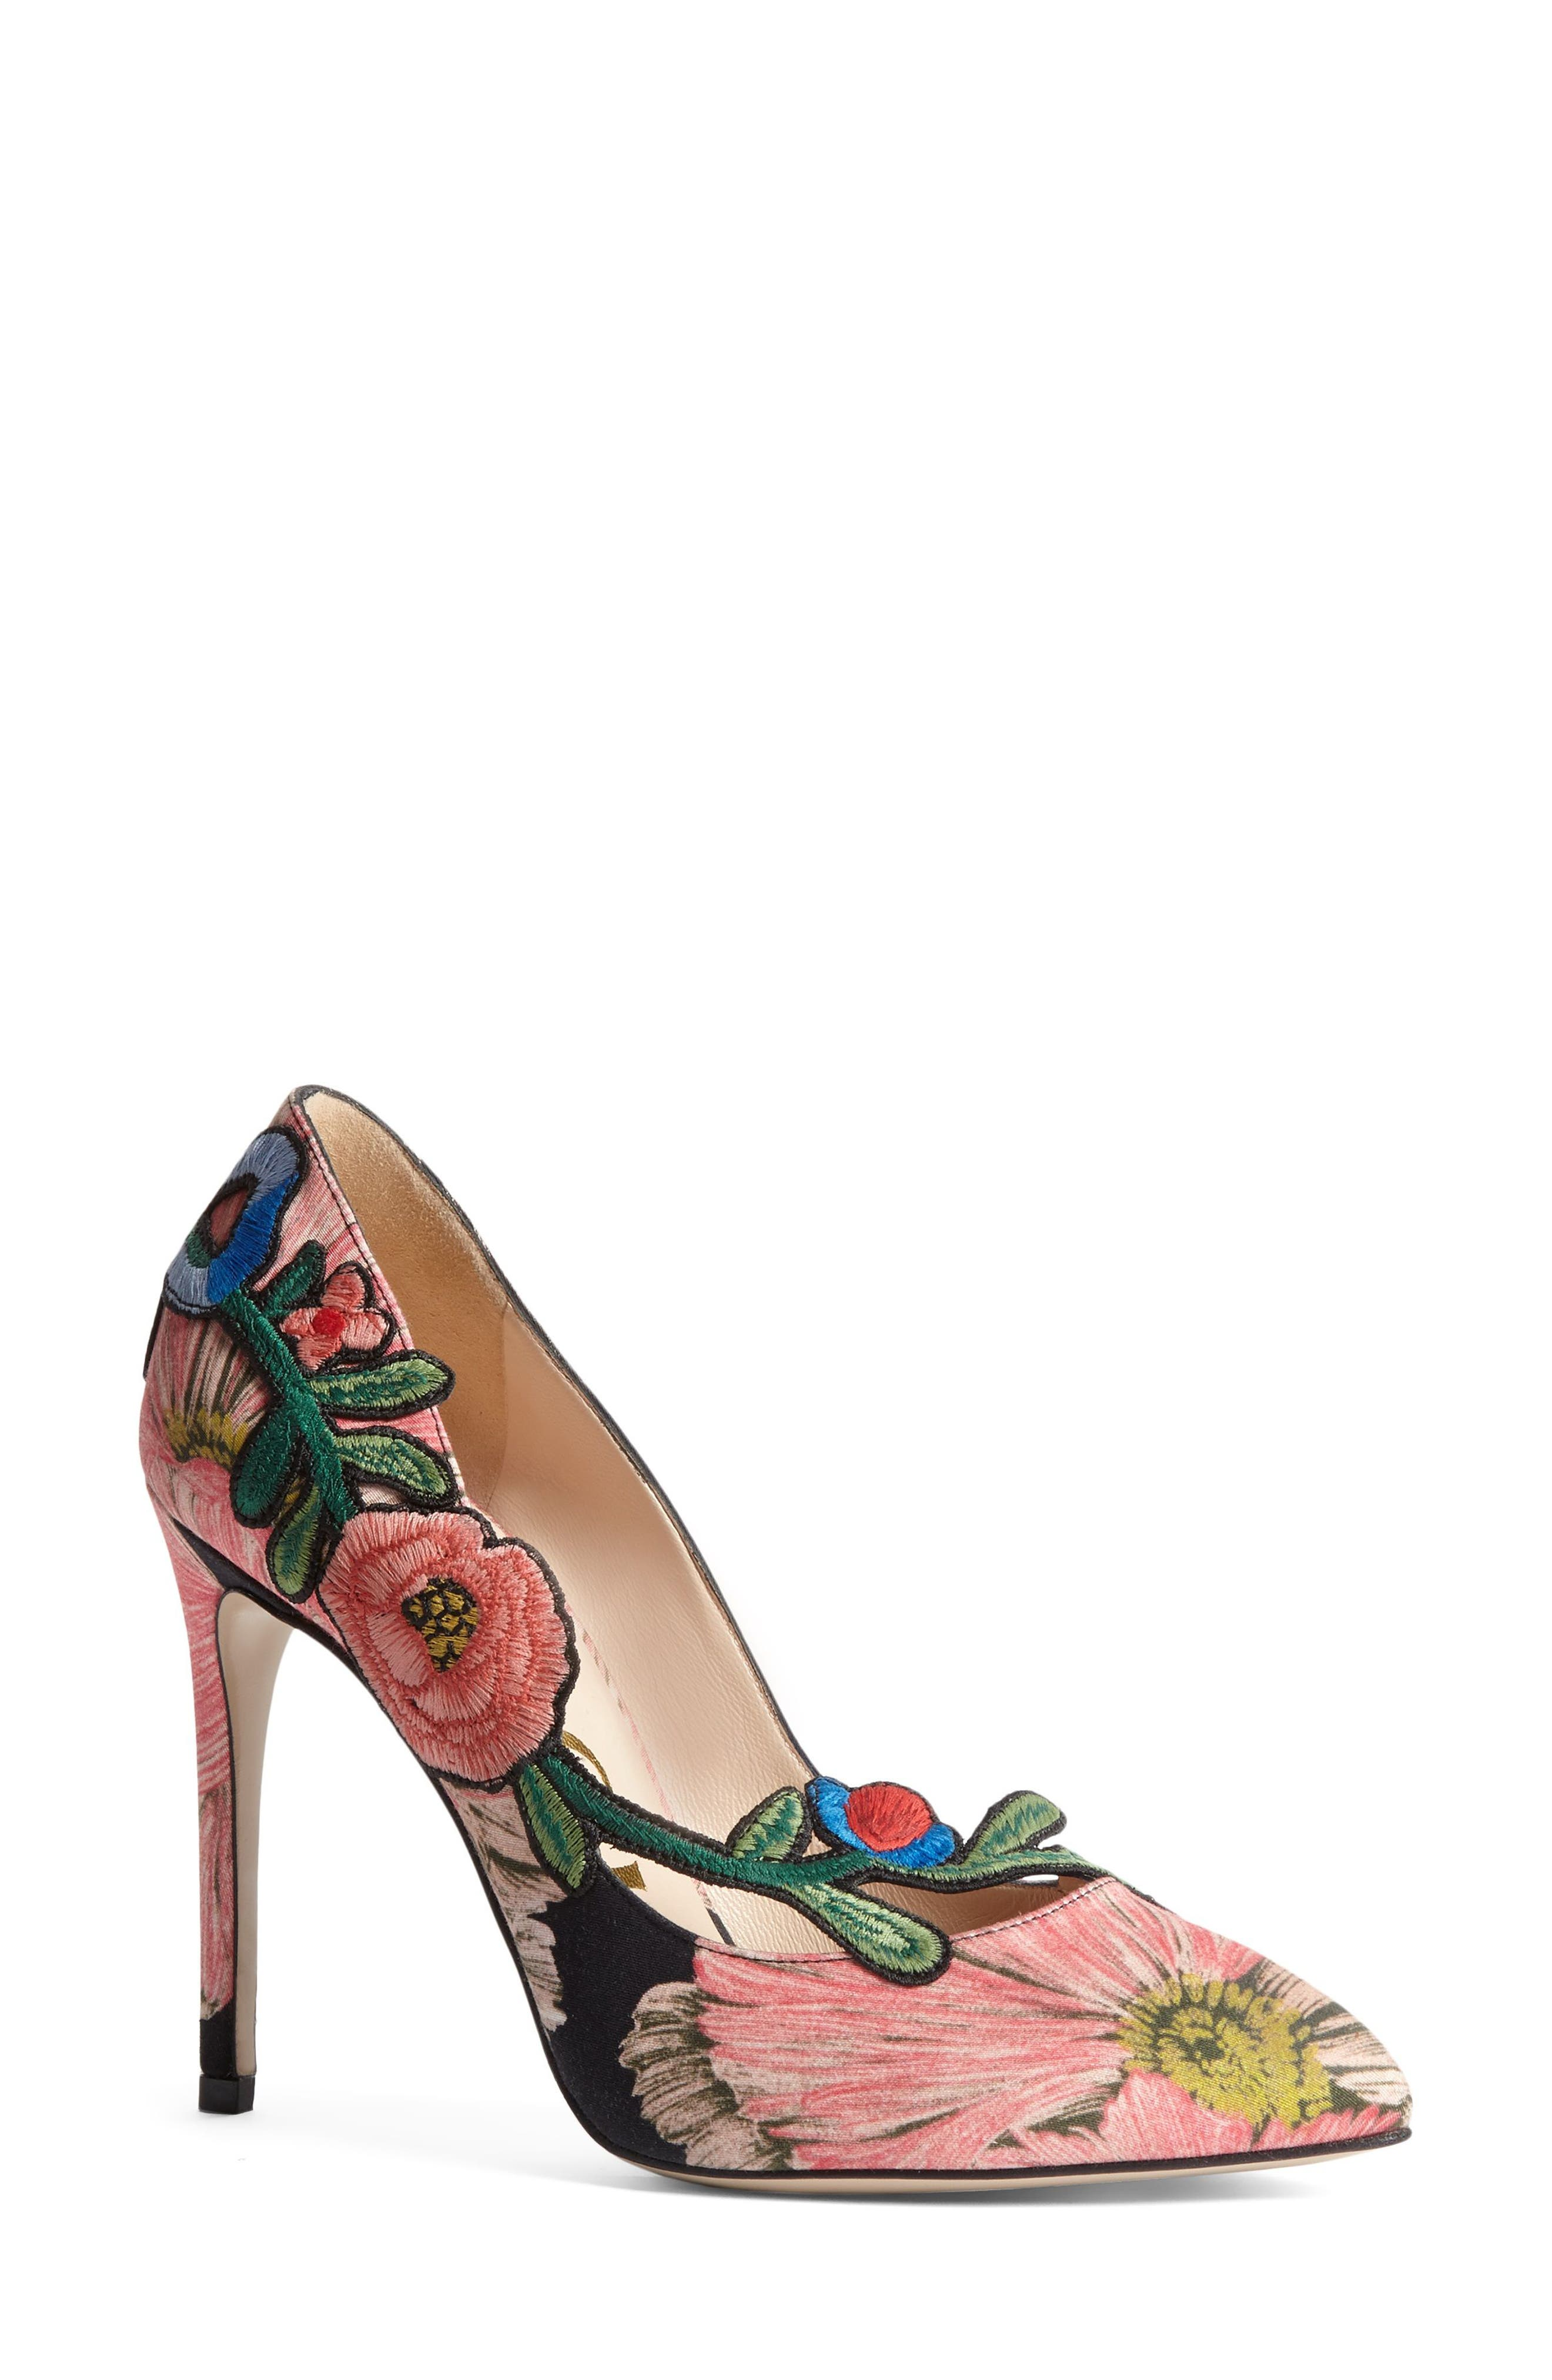 Alternate Image 1 Selected - Gucci Ophelia Floral Pump (Women)